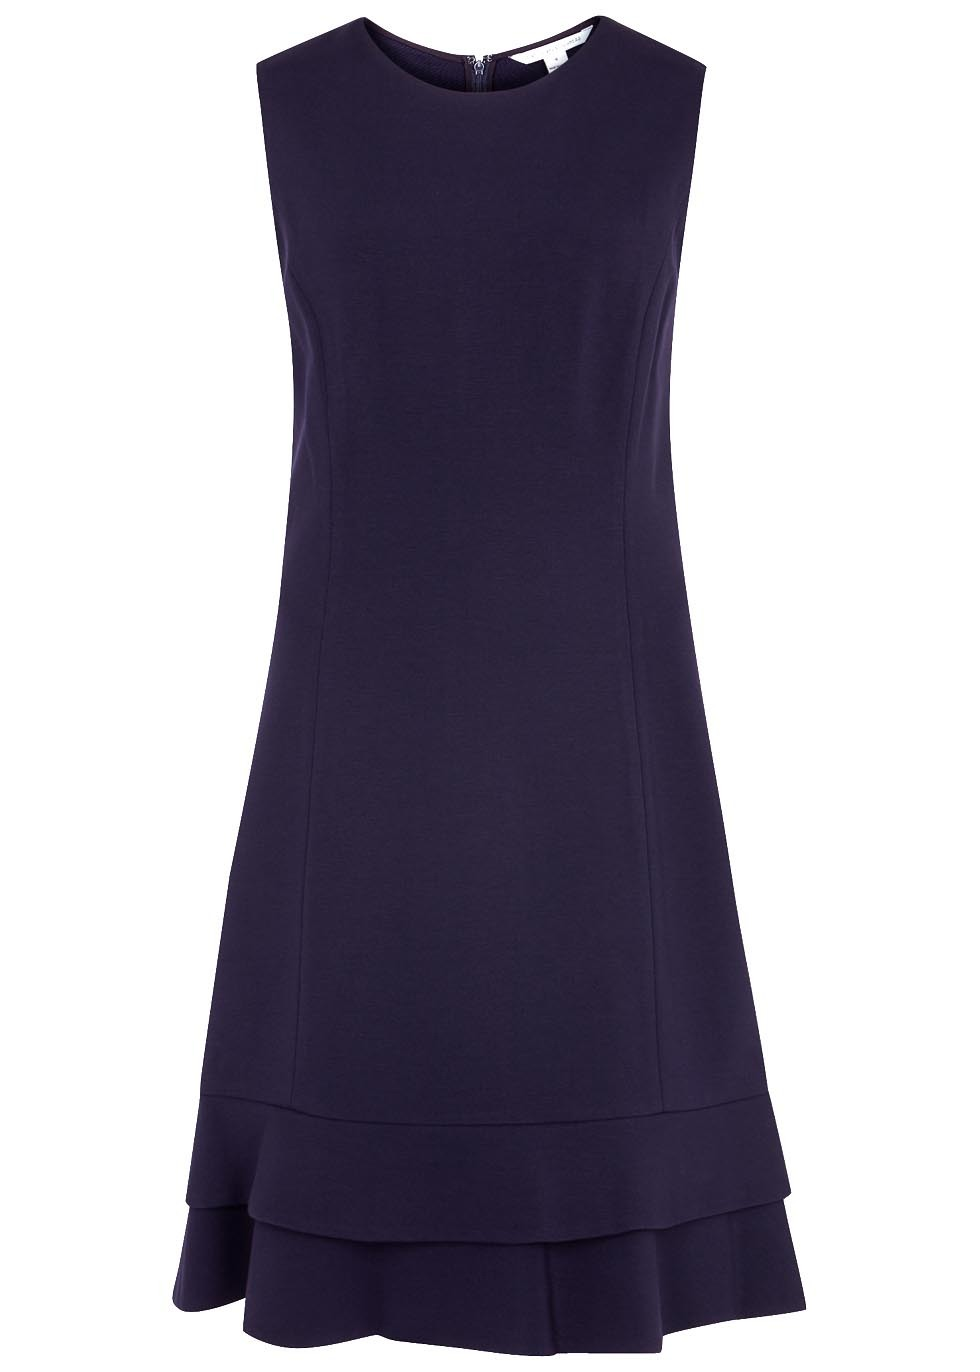 Jacey Navy Jersey Dress - length: mid thigh; pattern: plain; sleeve style: sleeveless; predominant colour: navy; occasions: evening, occasion; fit: fitted at waist & bust; style: fit & flare; fibres: polyester/polyamide - 100%; neckline: crew; sleeve length: sleeveless; texture group: crepes; pattern type: fabric; season: a/w 2016; wardrobe: event